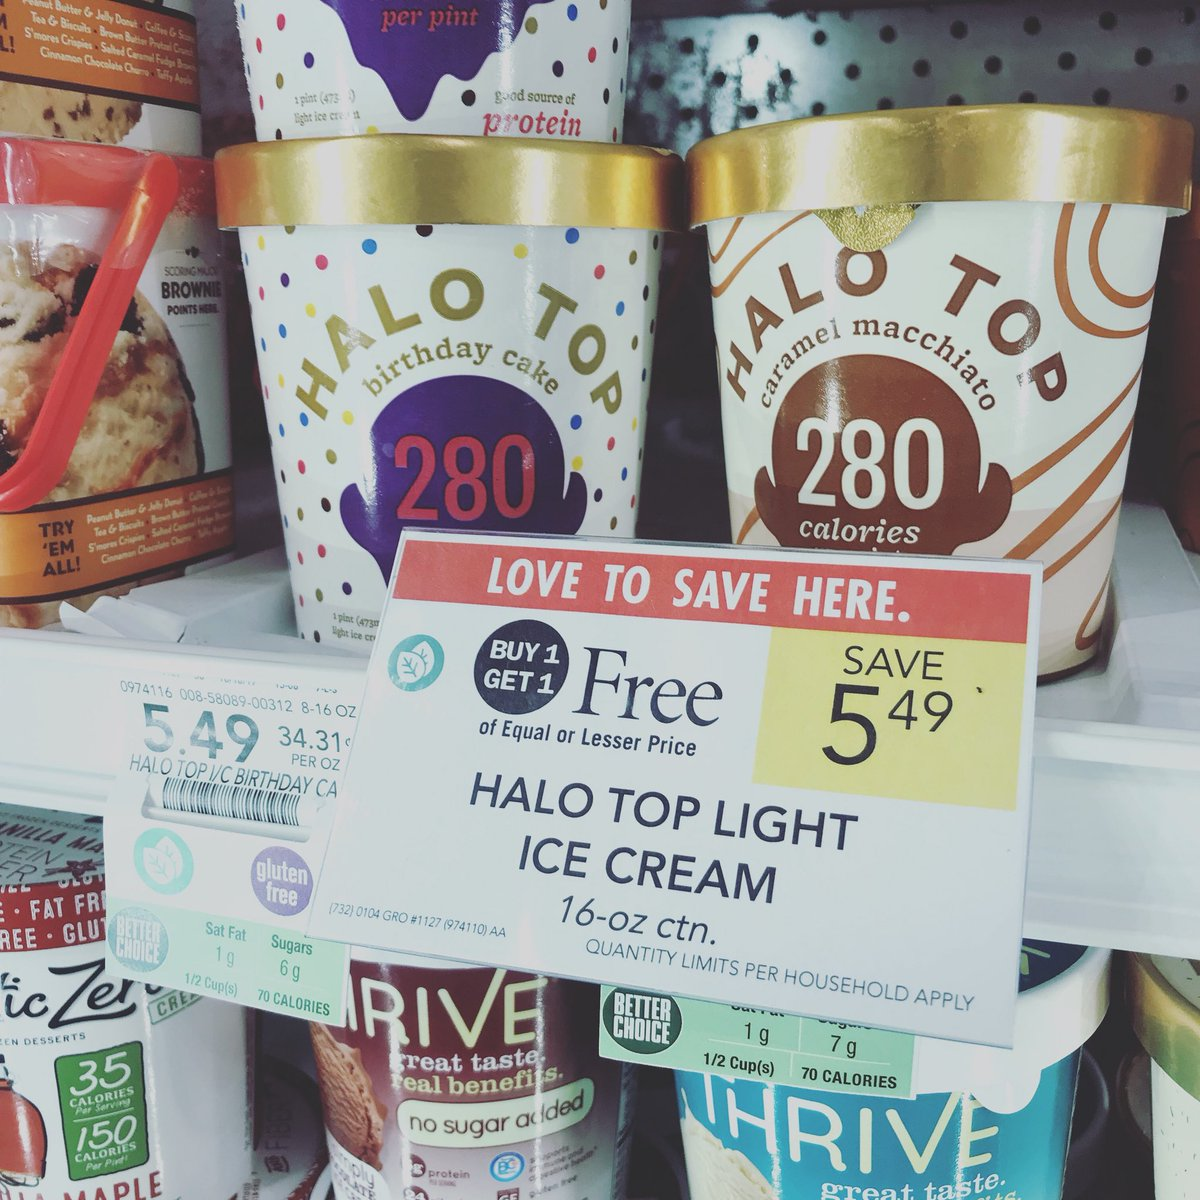 Halo Top Ice Cream Birthday Cake Nutrition Facts